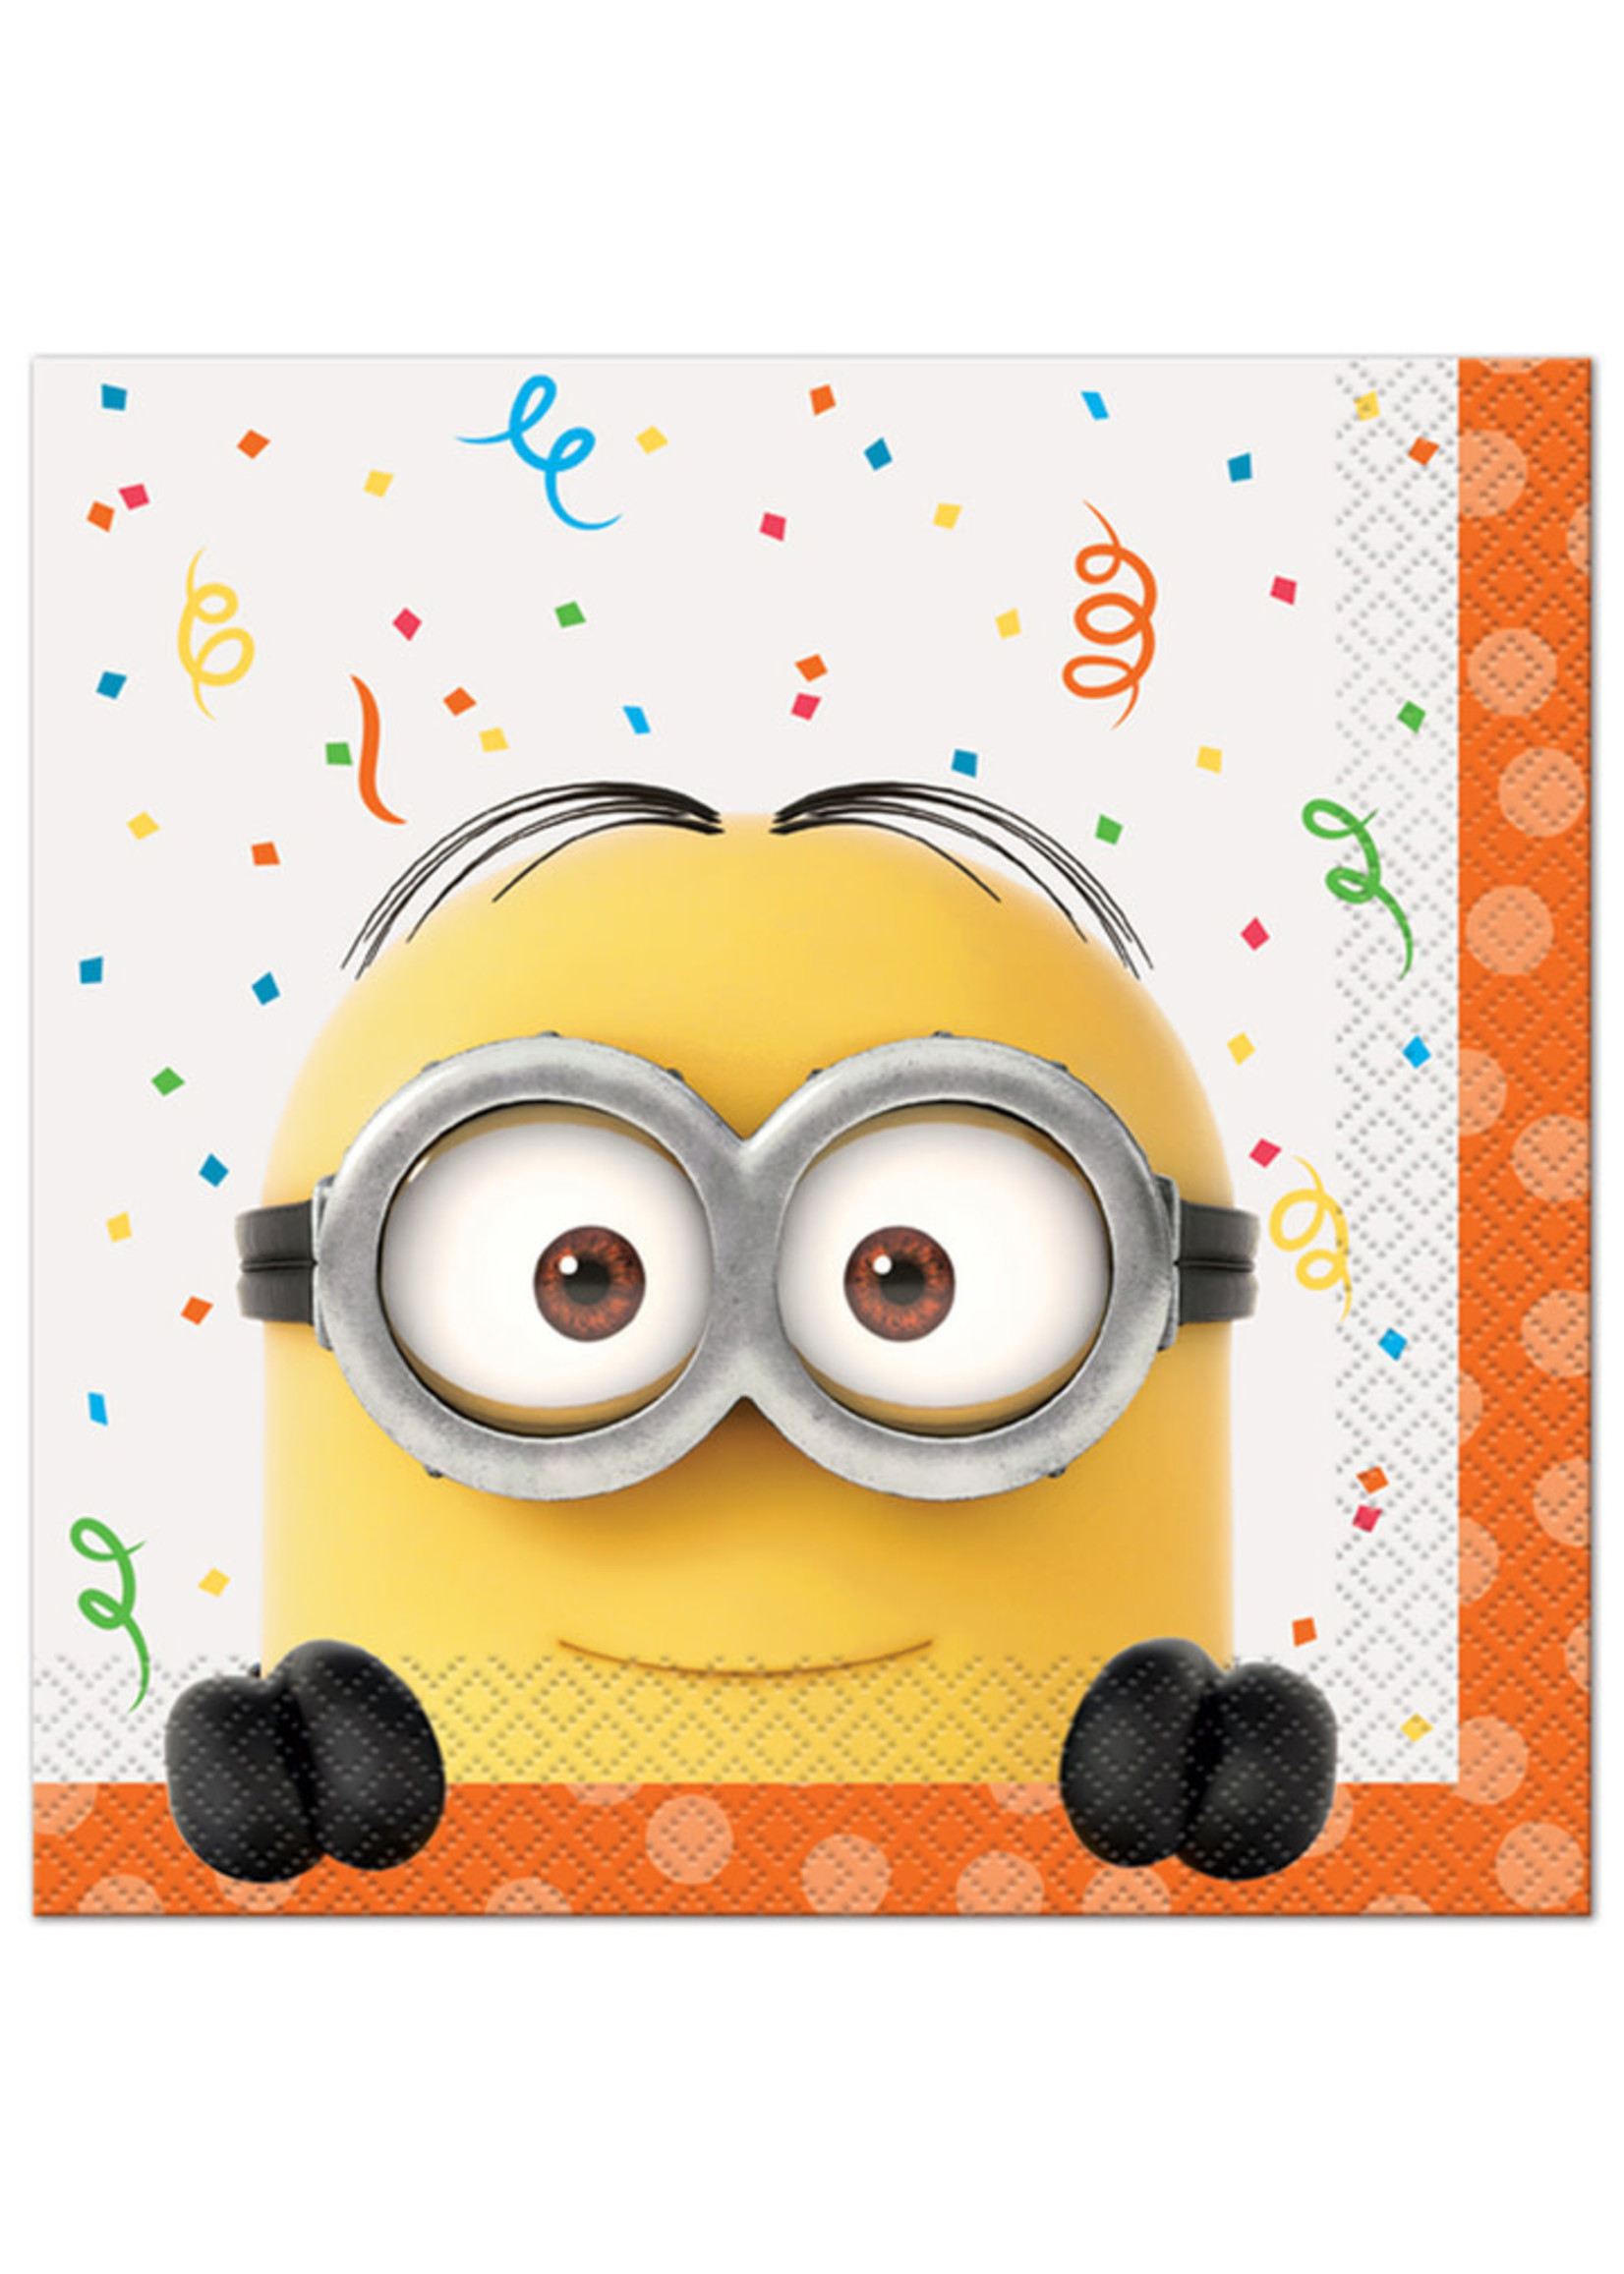 UNIQUE INDUSTRIES INC Despicable Me Minions Luncheon Napkins - 16ct